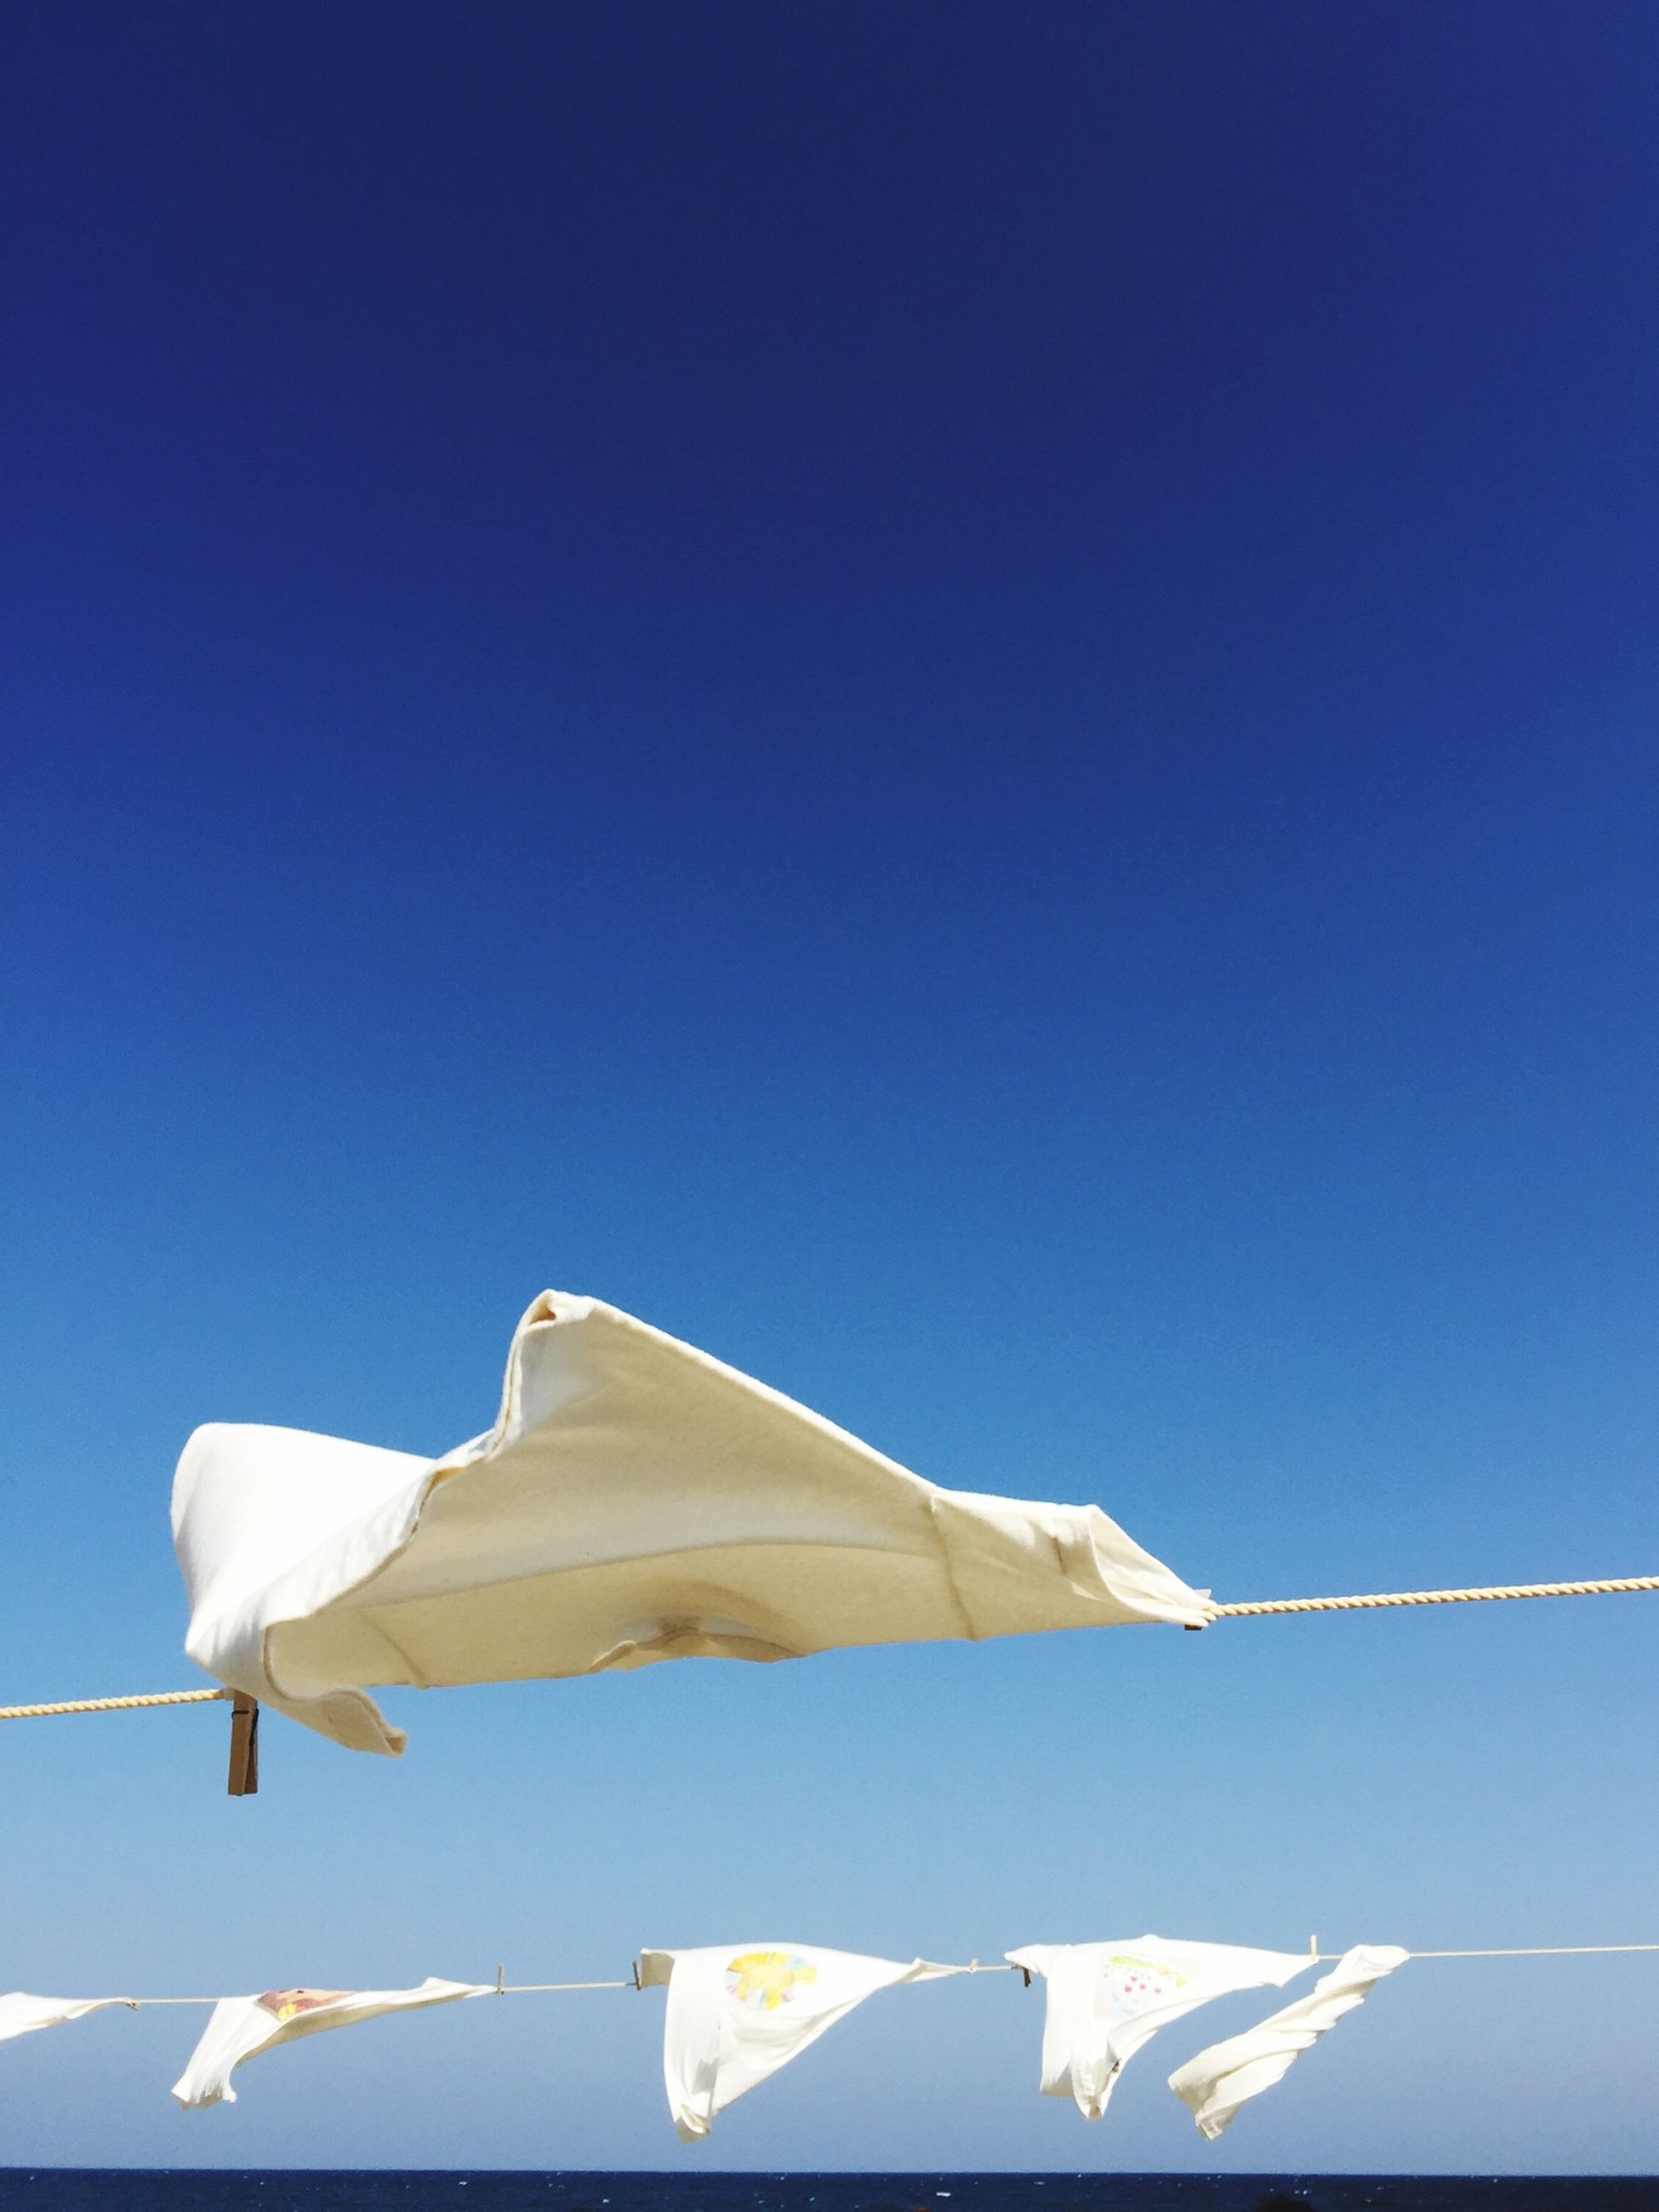 blue, low angle view, clear sky, white color, copy space, white, bird, no people, day, sunlight, outdoors, sky, nature, flag, fabric, hanging, high section, built structure, roof, part of